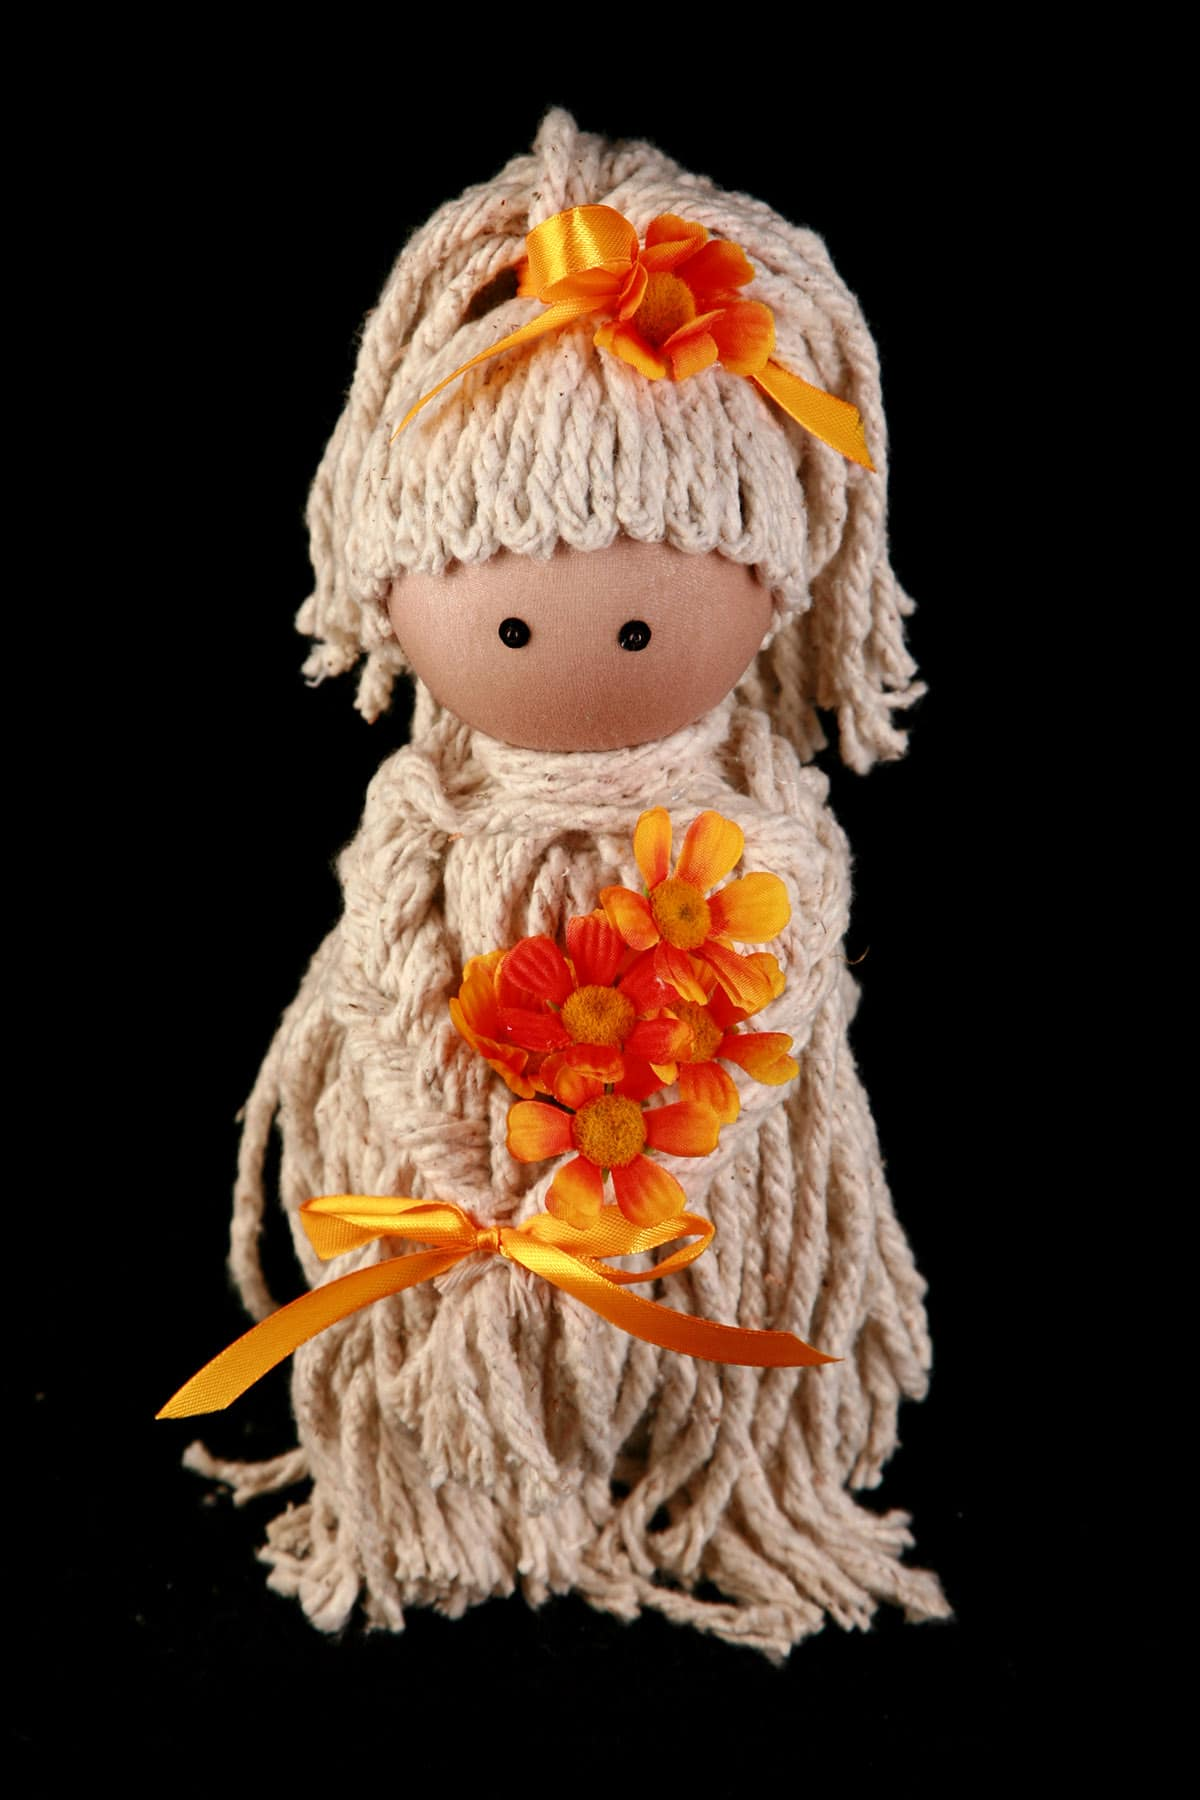 One finished Mop DOll Air Freshener, with Orange ribbons and flowers